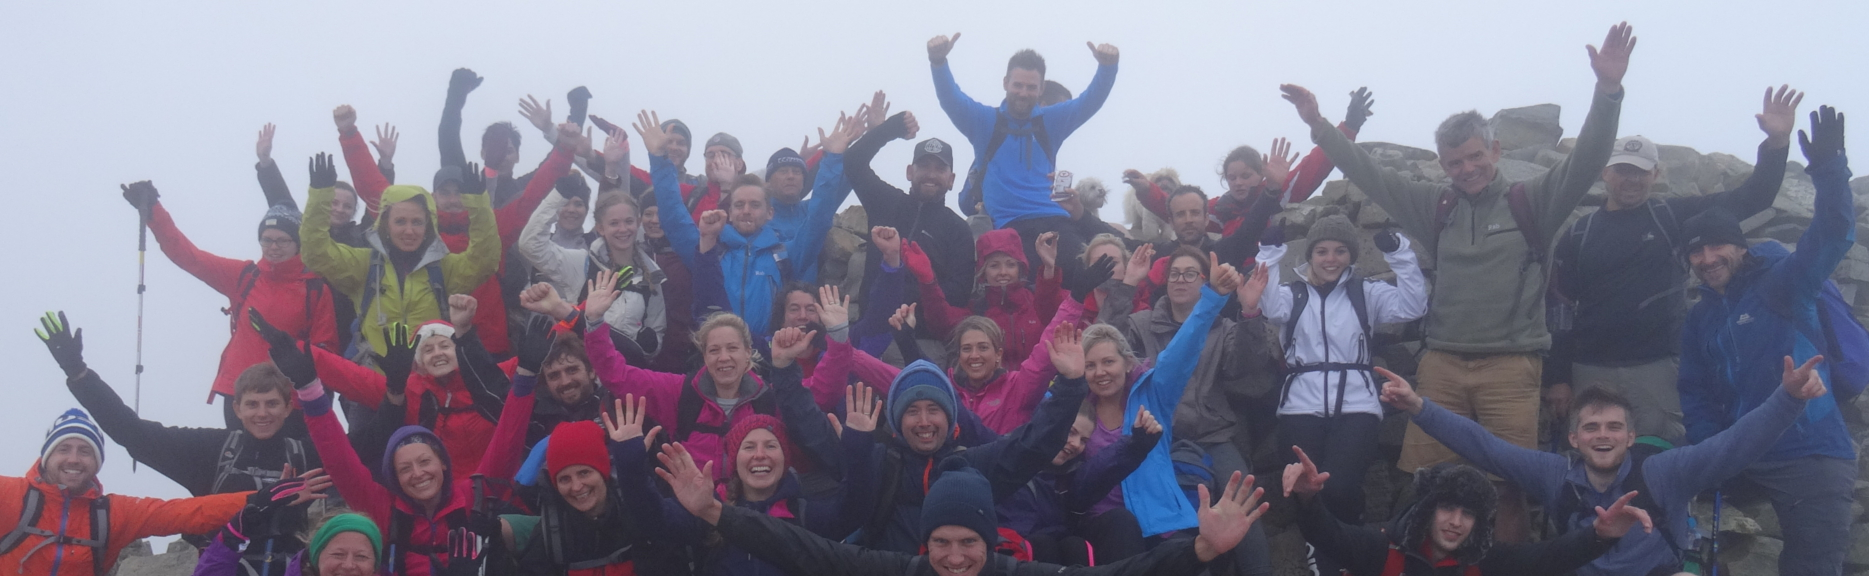 National 3 peaks group